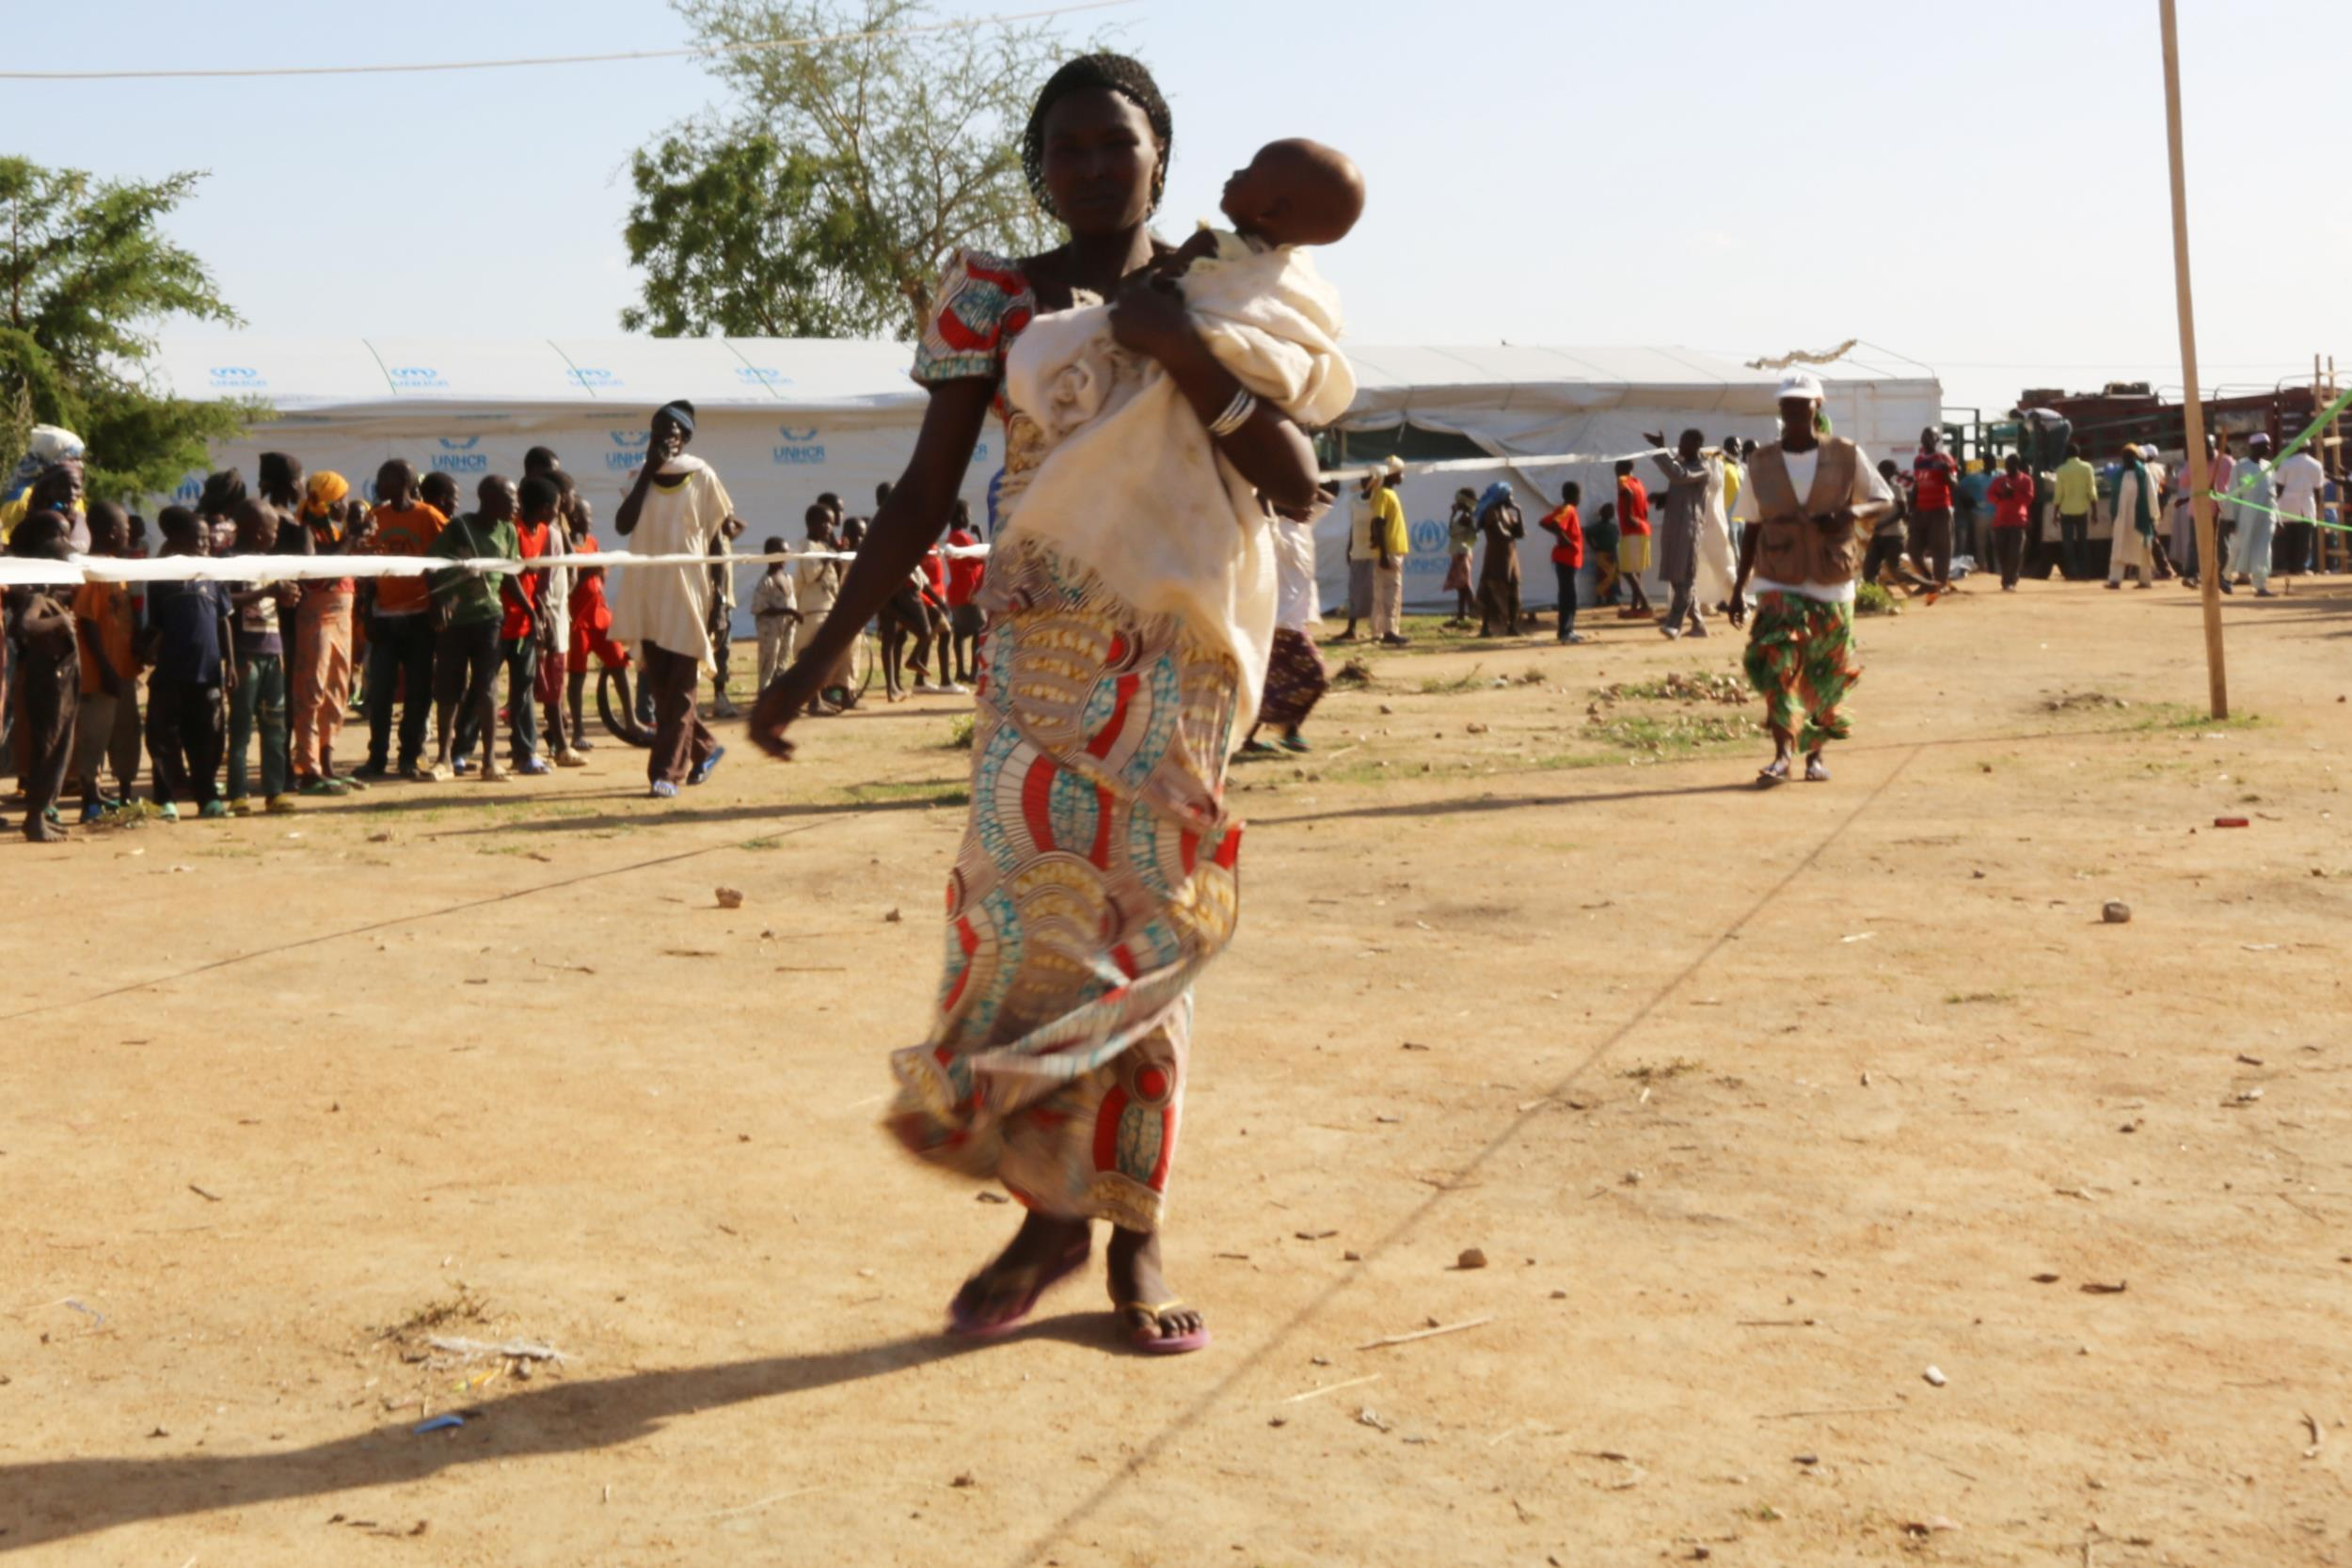 Nigerians fleeing Boko Haram violence arrive at the Minawao Camp across the border in Cameroon.